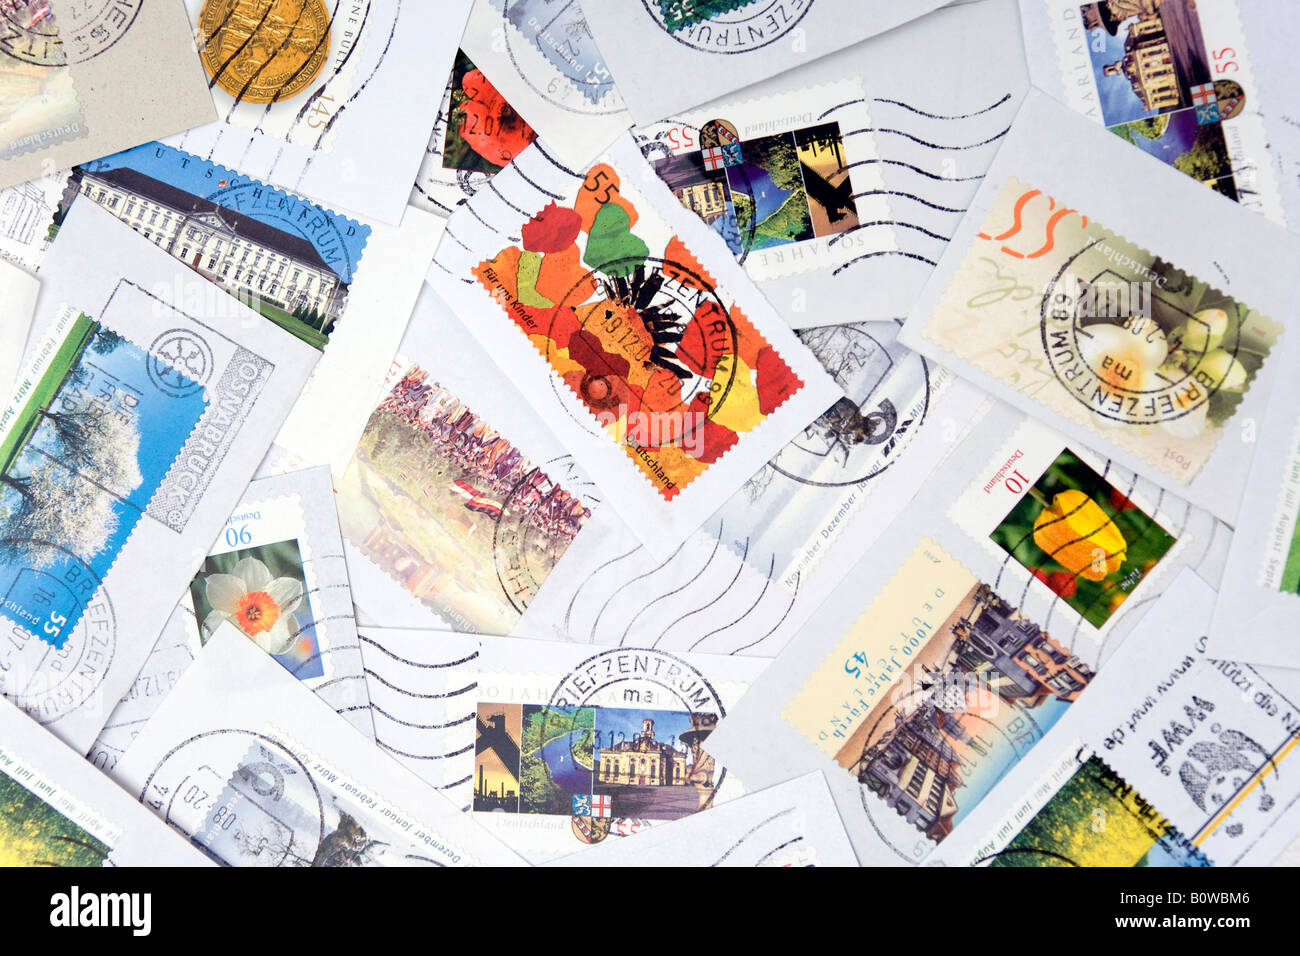 Assorted stamps, clipped from envelopes - Stock Image